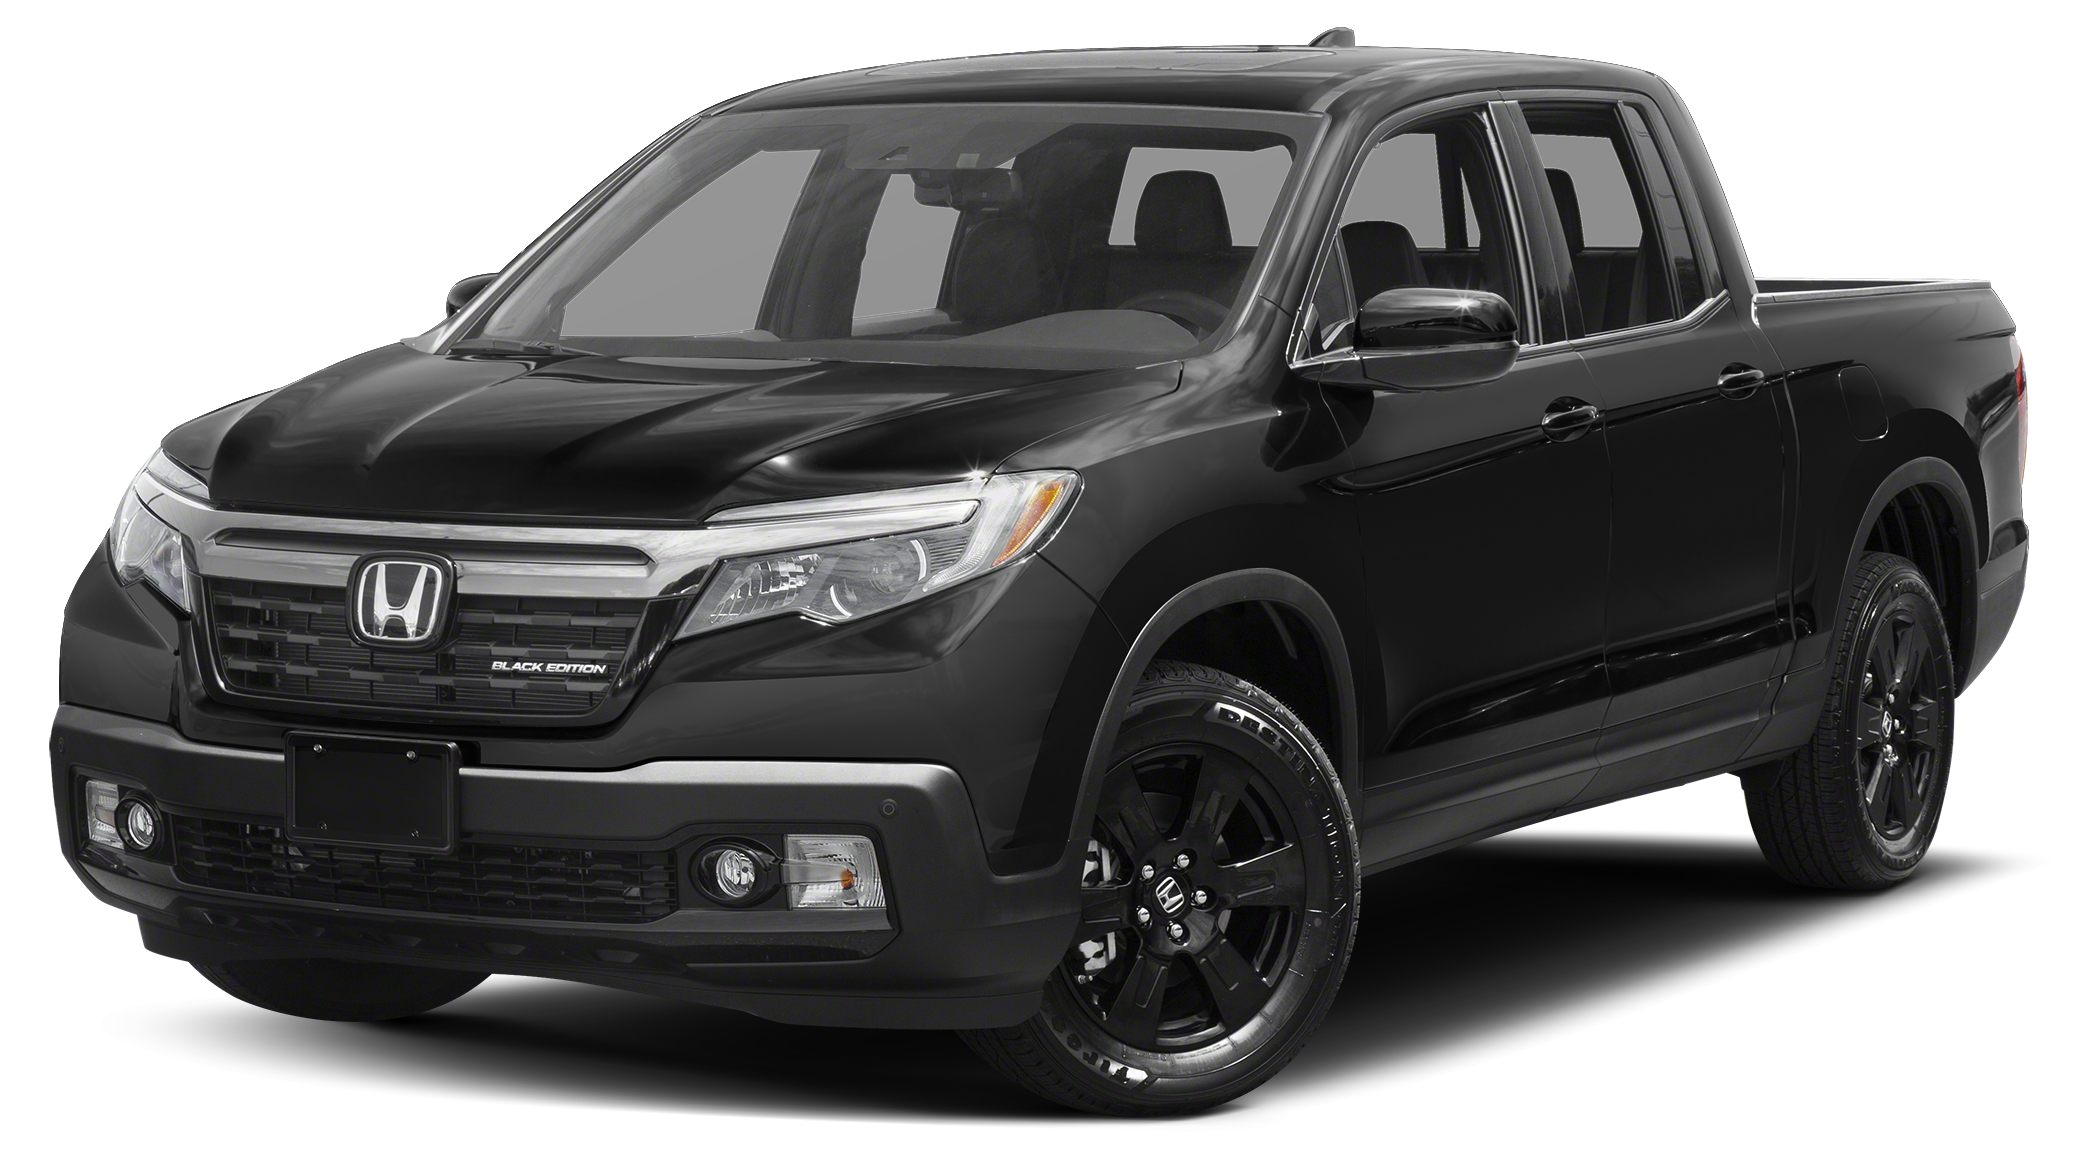 2017 Honda Ridgeline Black Edition BlackRed Leather Right truck Right price Wow Where do I st